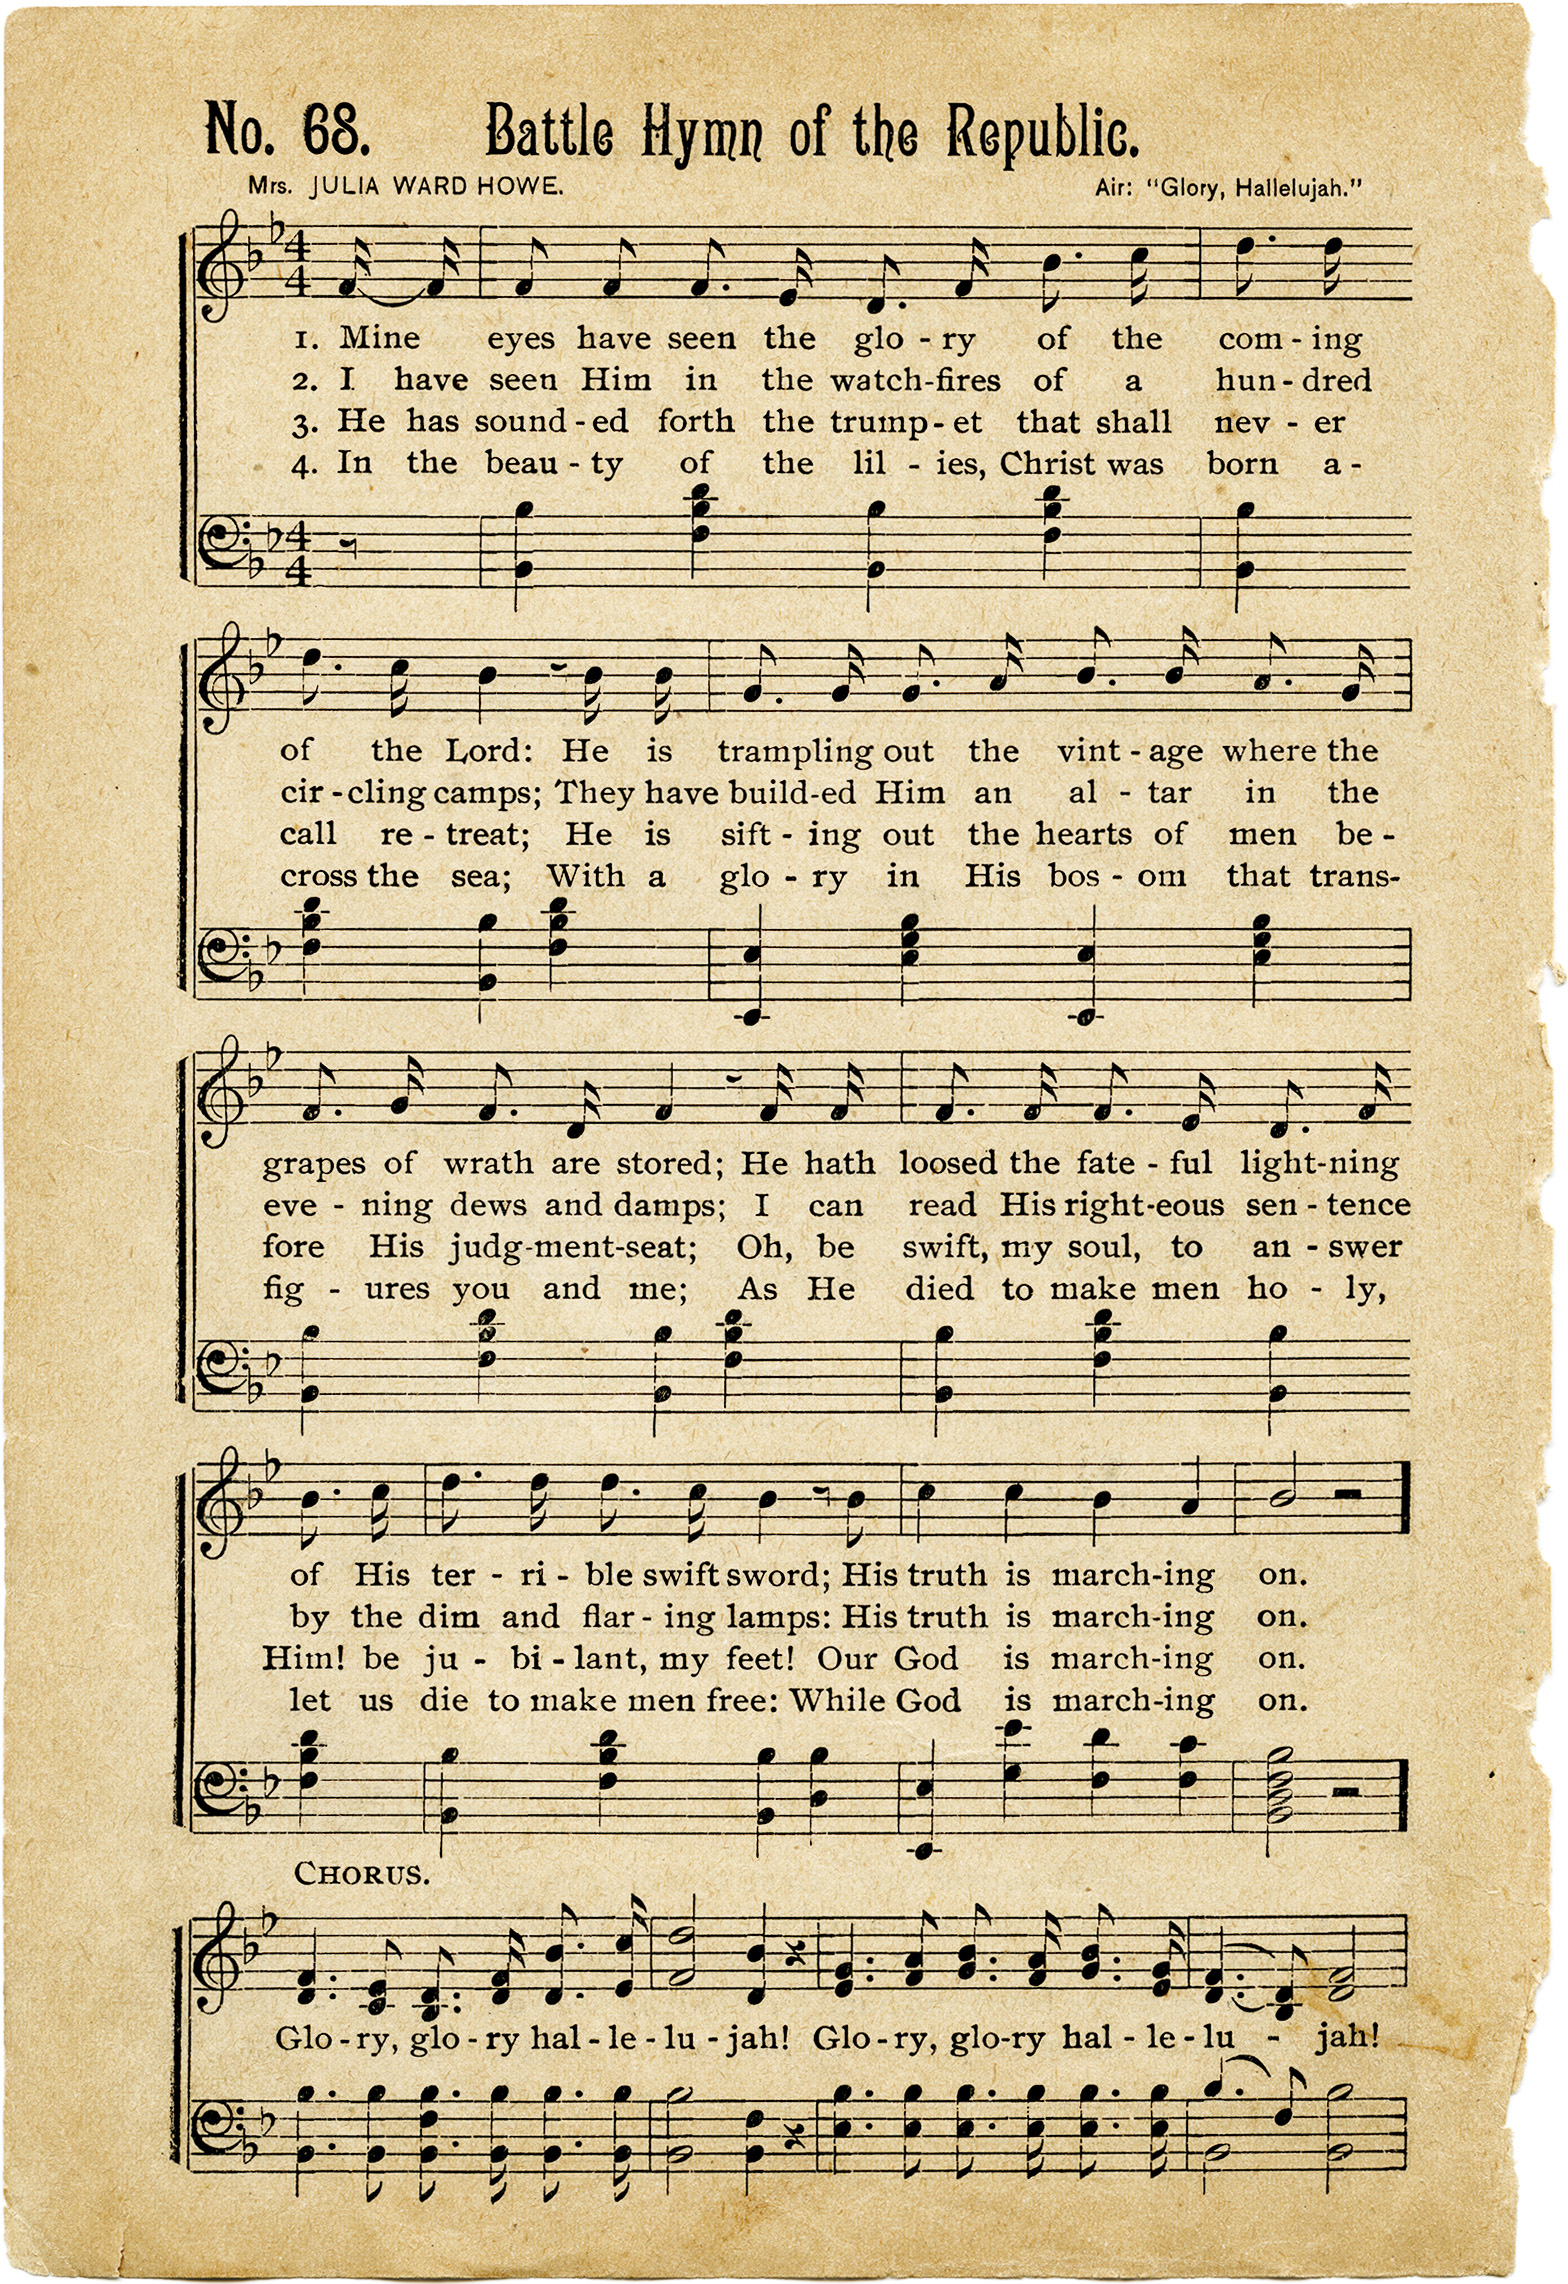 image about Printable Hymns Sheet Music titled Functional Traditional Printable Sheet Songs Santa Classic